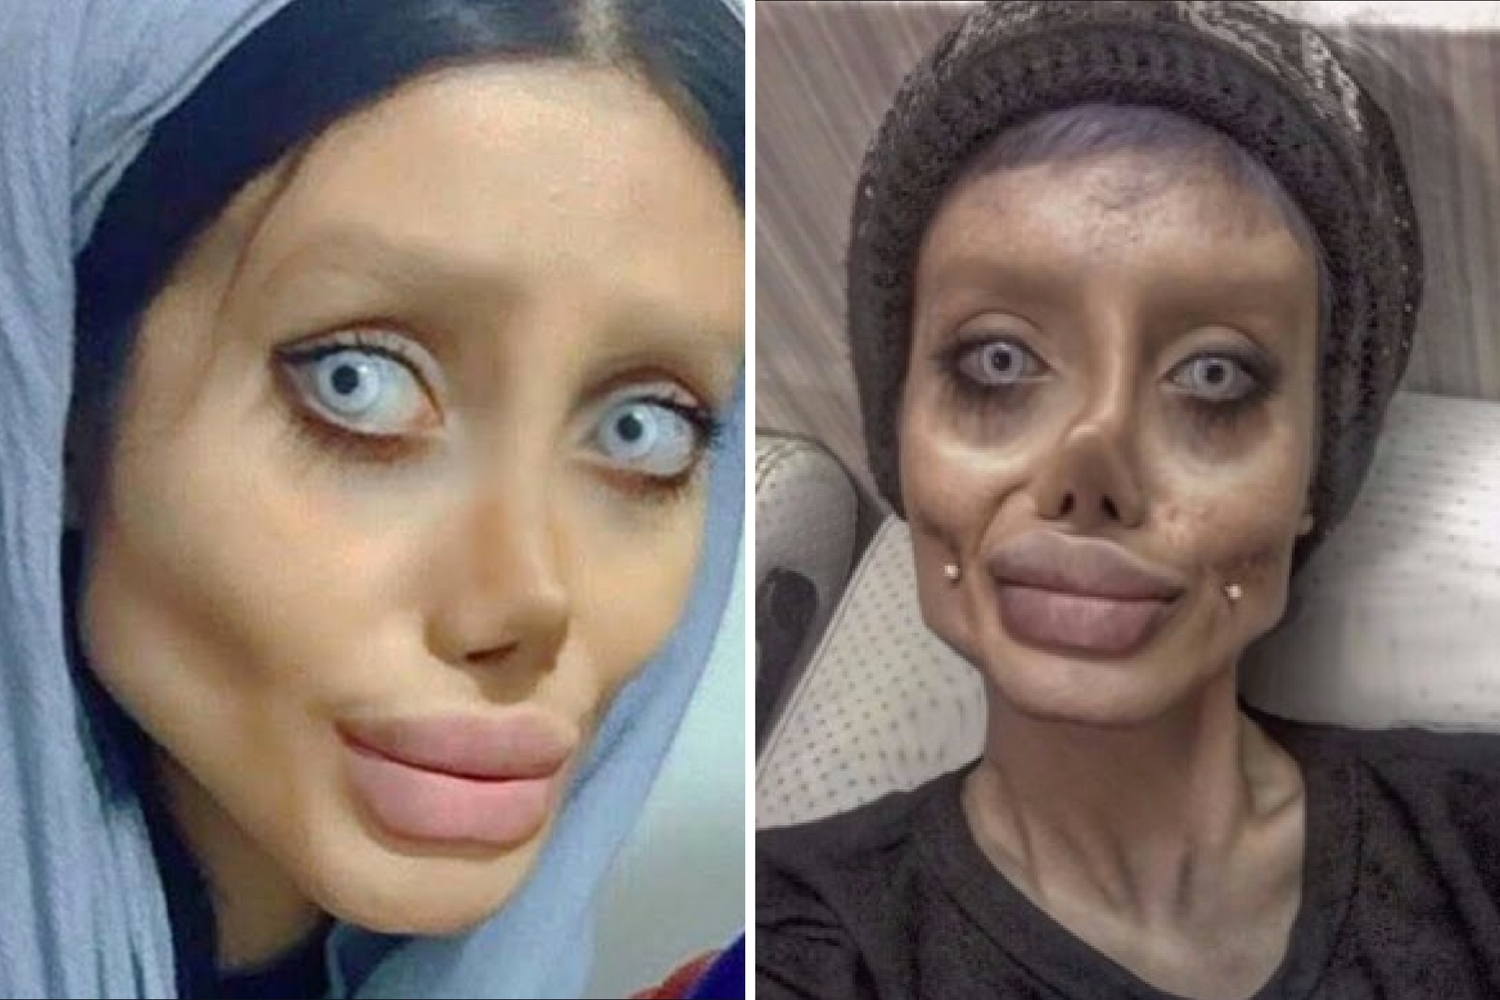 Girl who underwent surgery to look like Angelina Jolie was